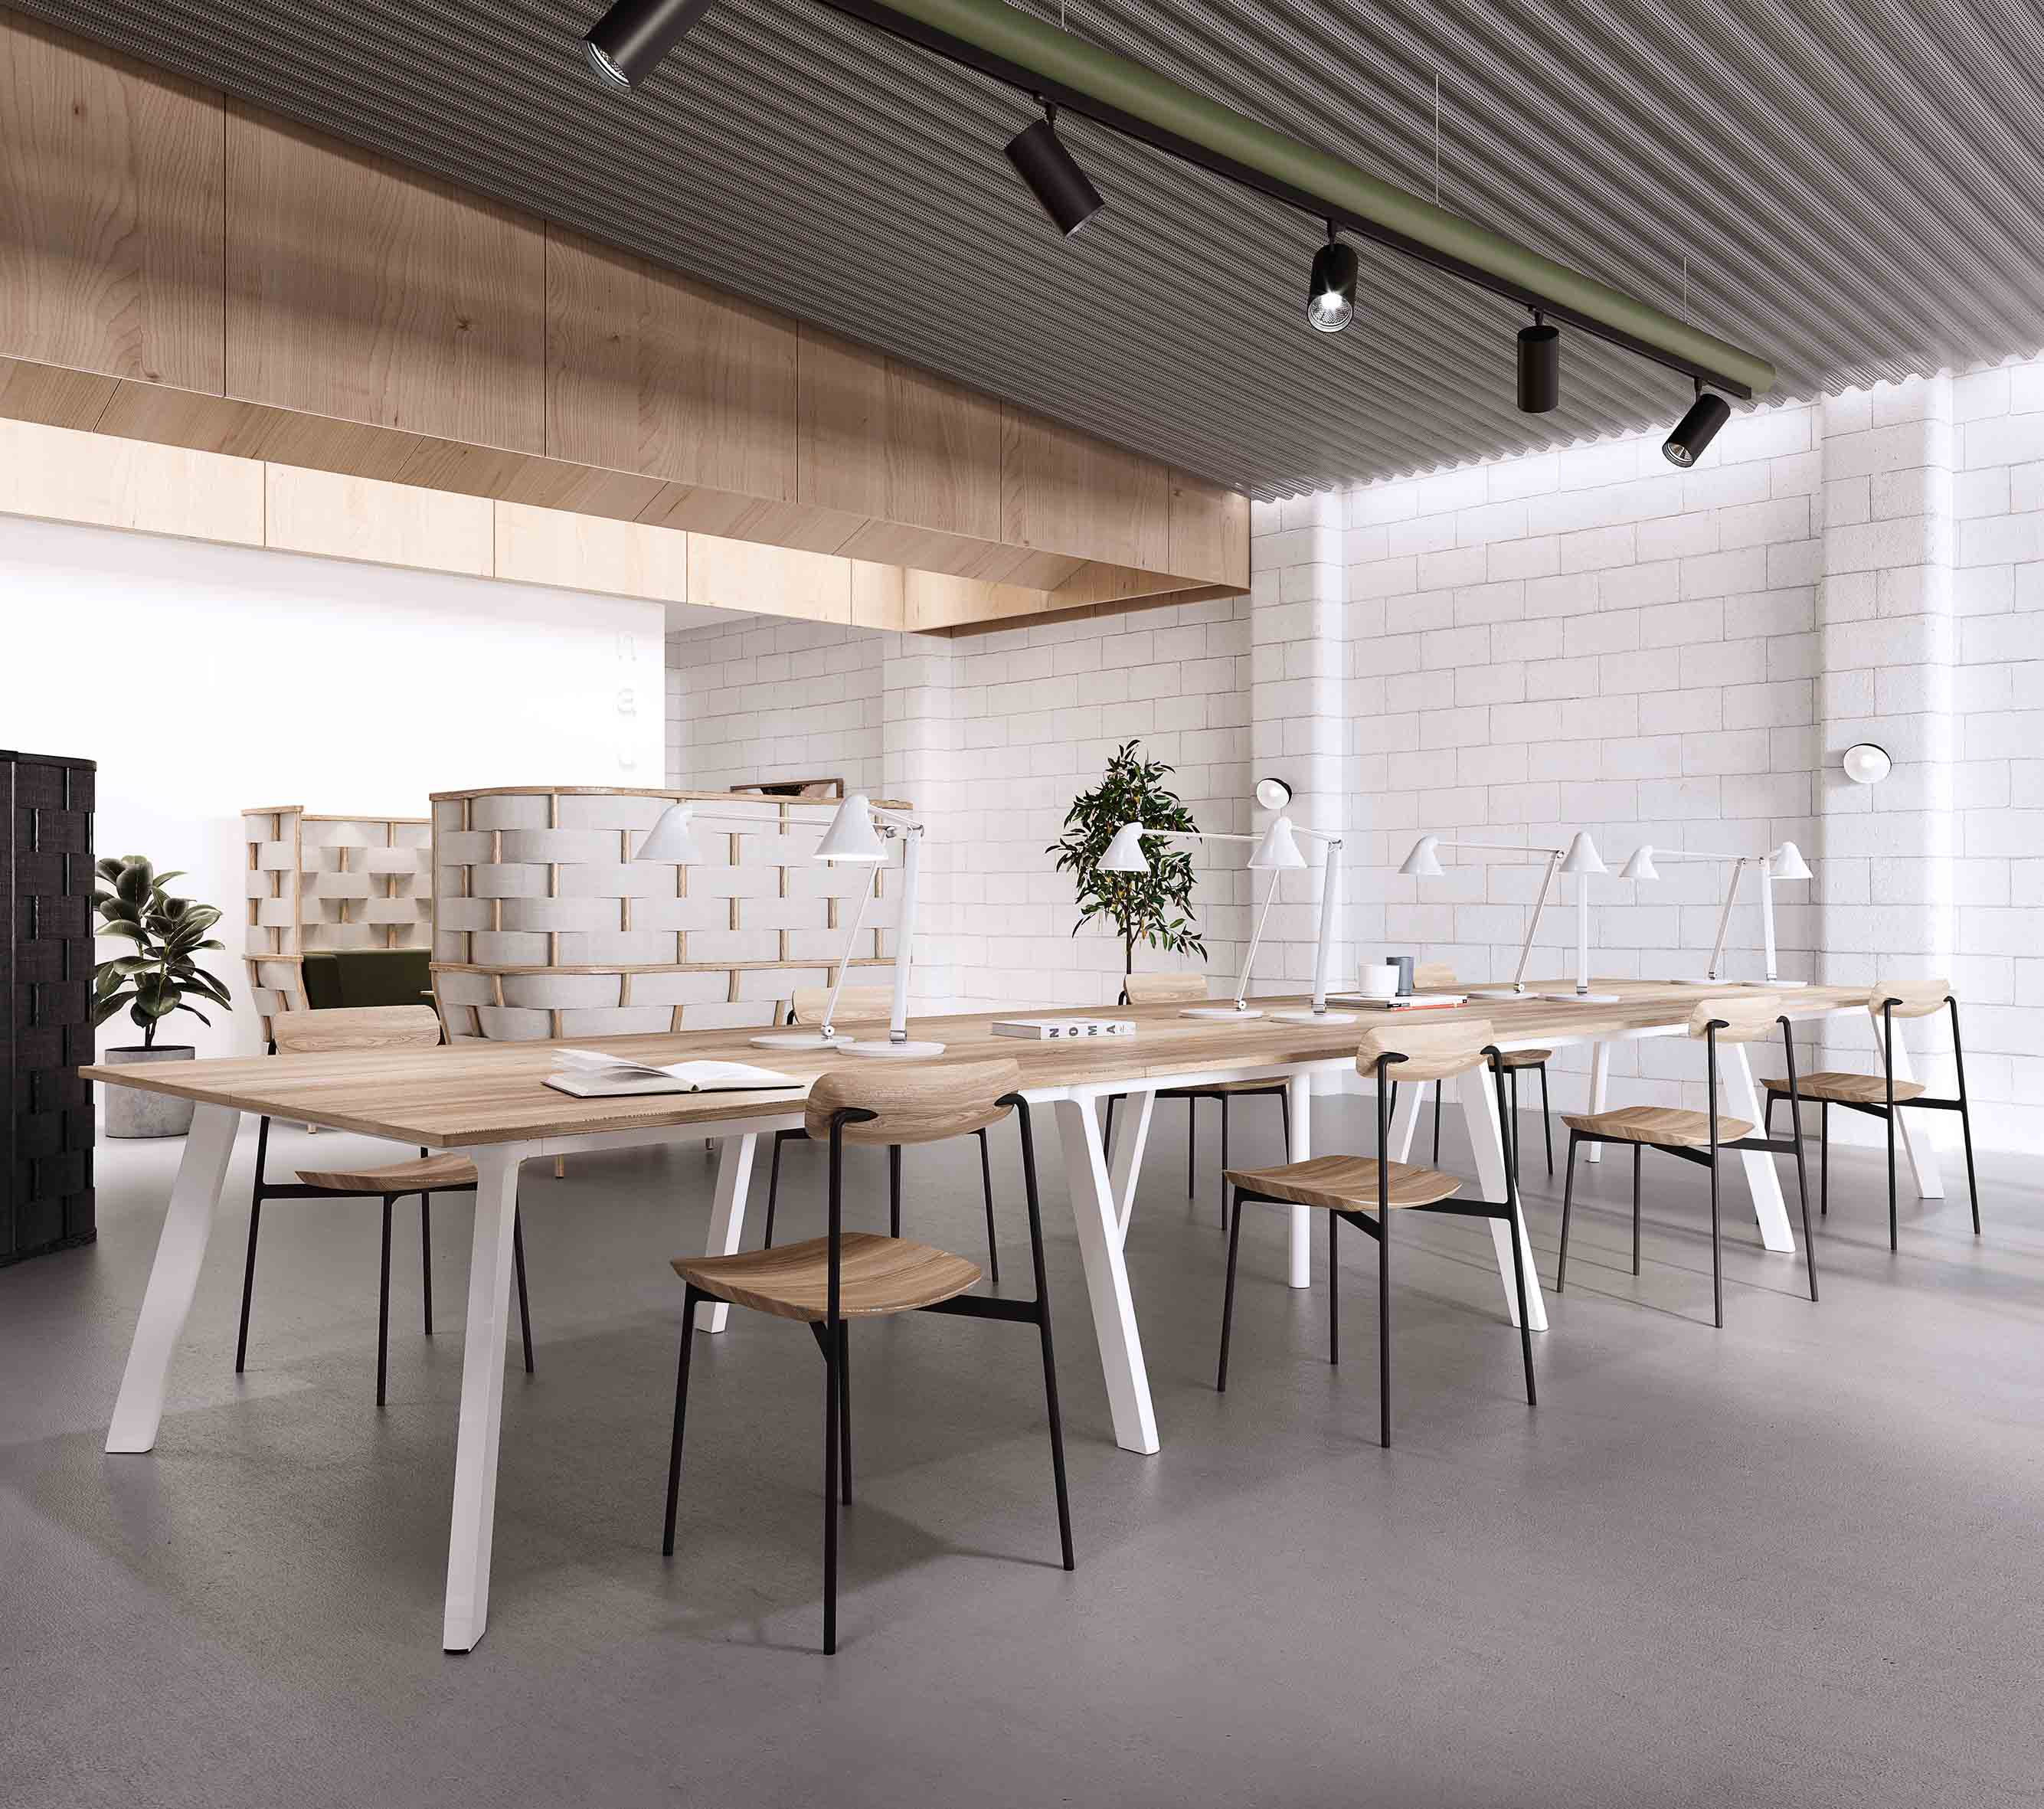 04_Chameleon table 140×70 and SIA chairs